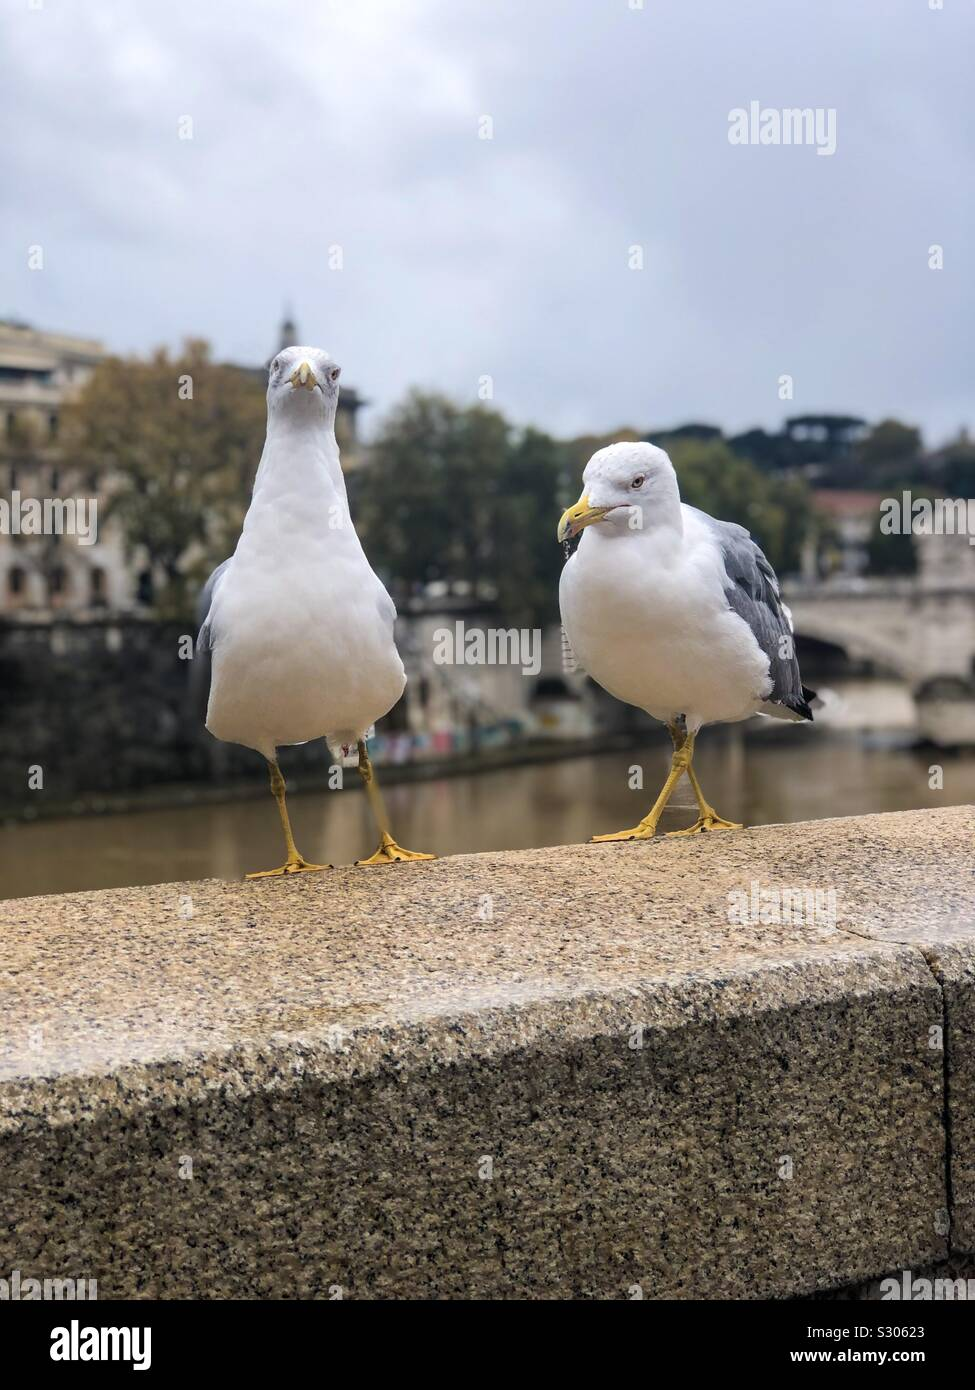 Seagulls perched on a stone wall in Rome. Stock Photo